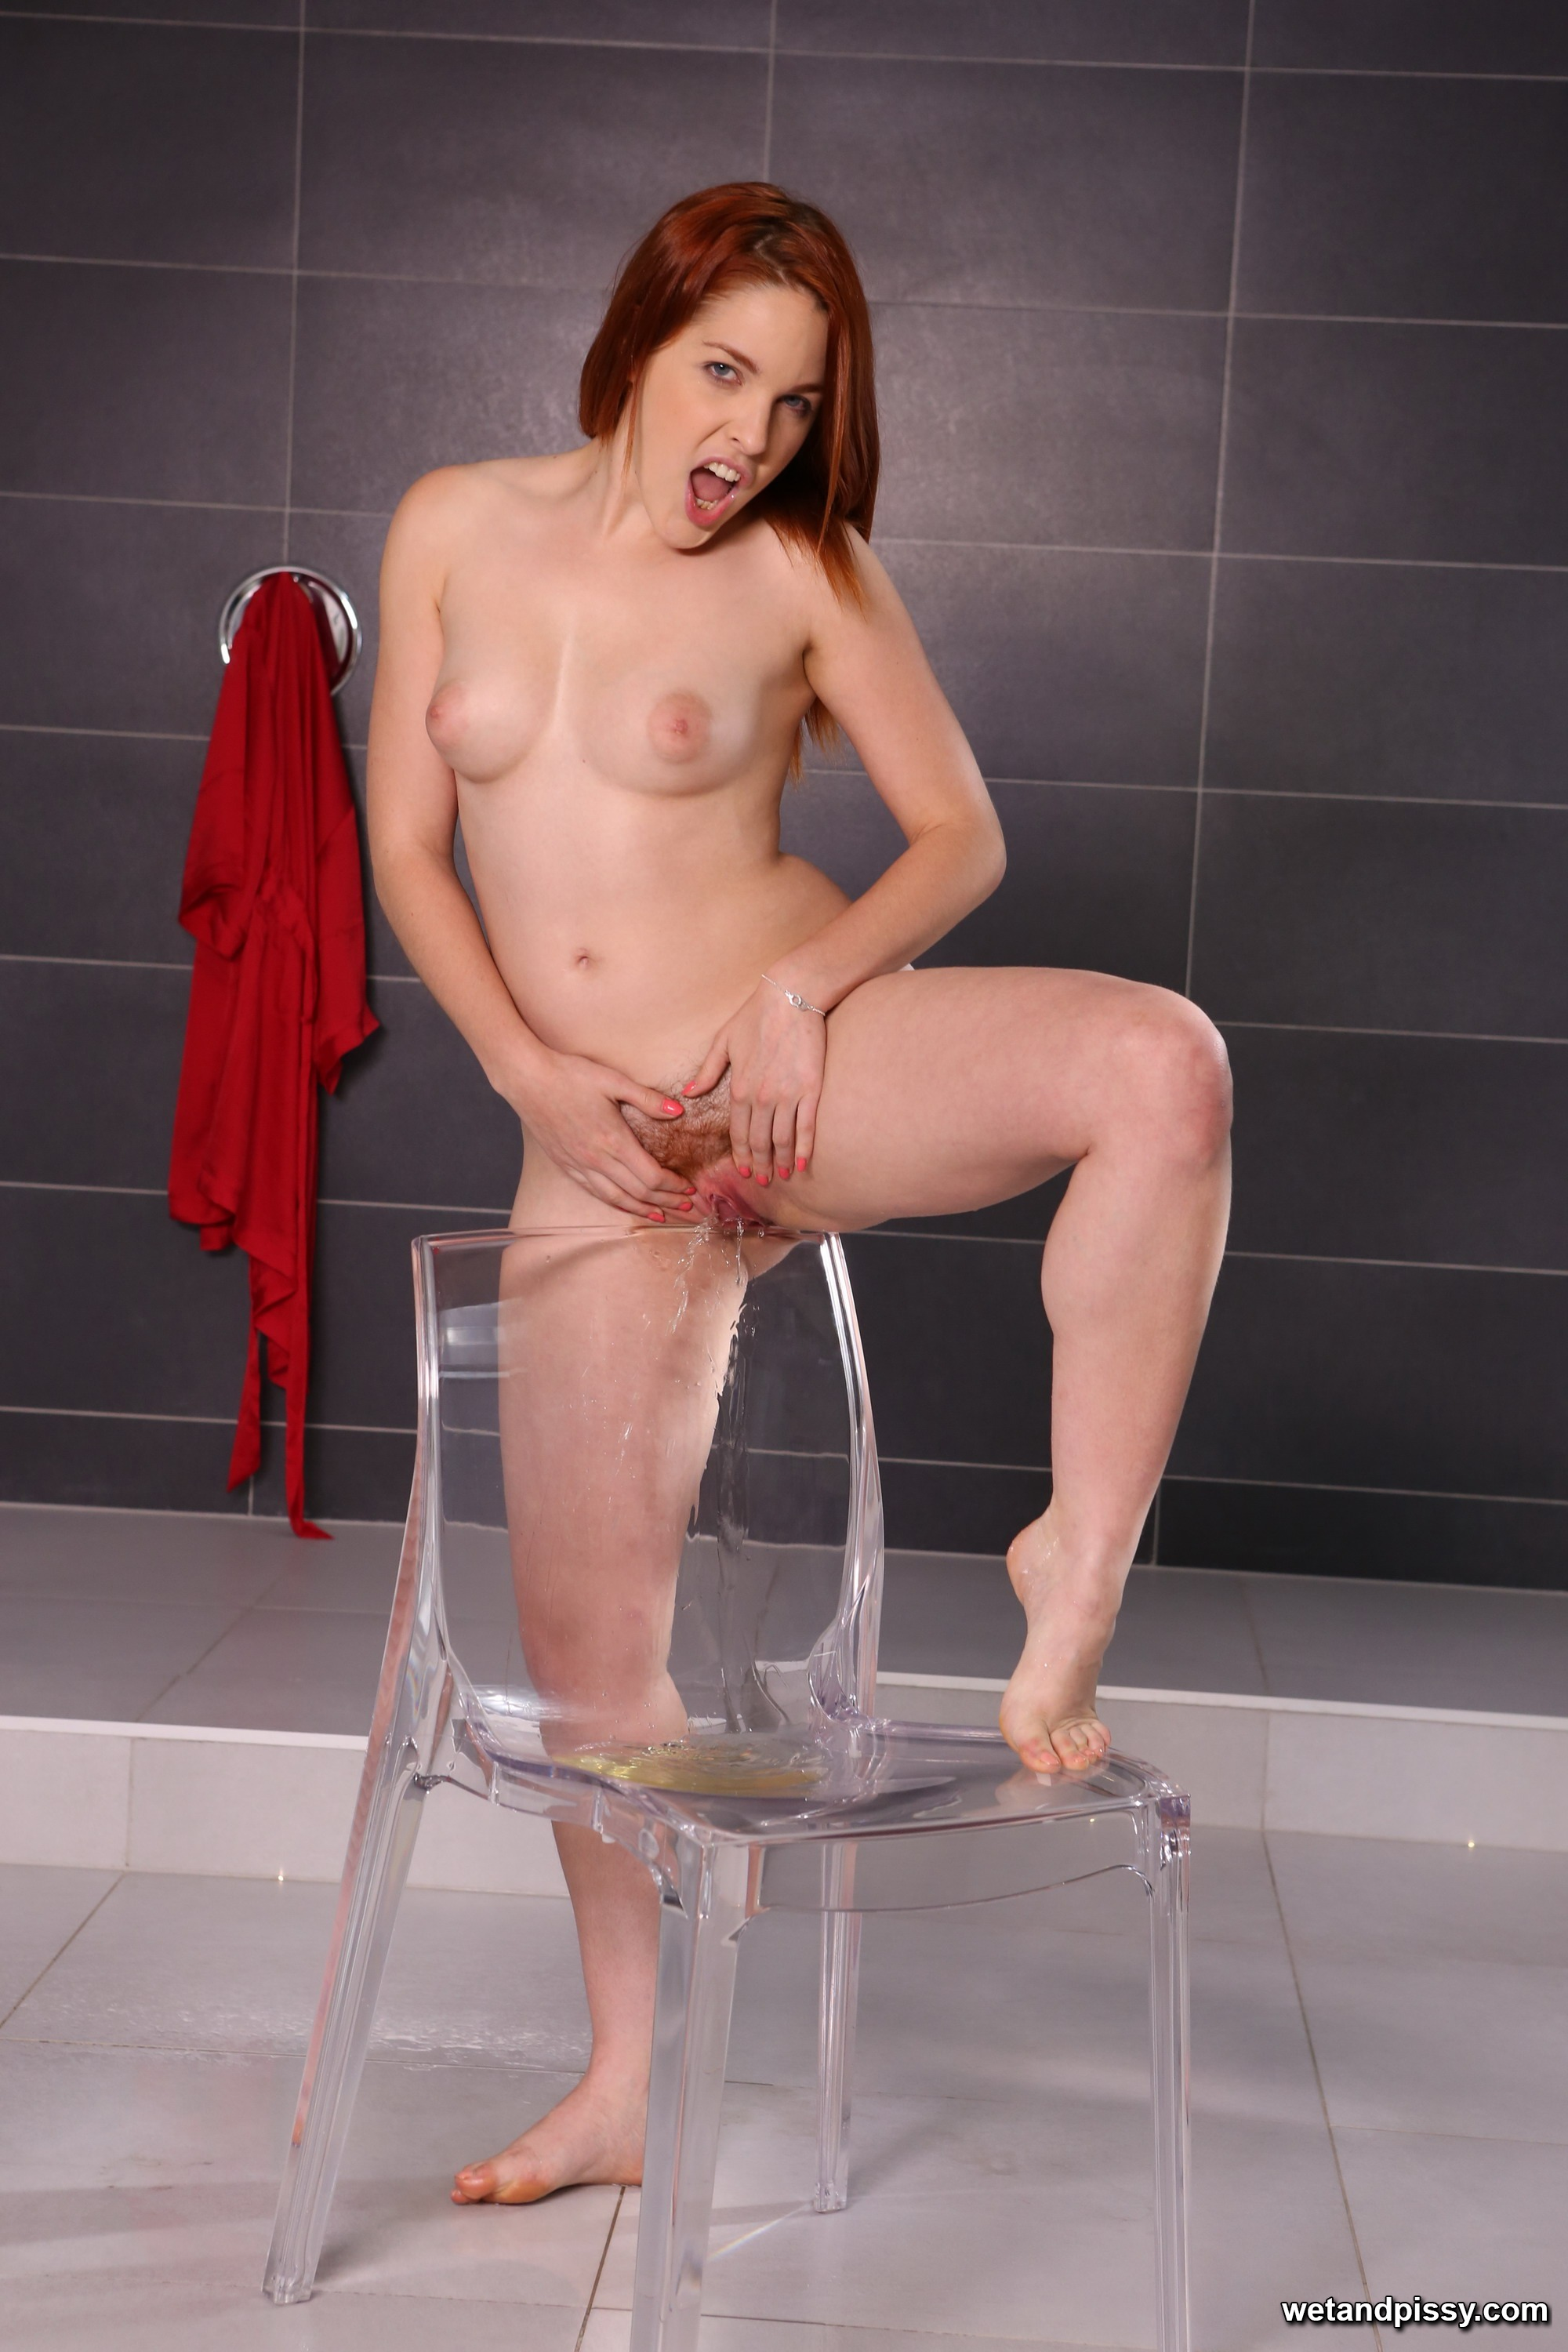 Hotties from hell lesbian shower